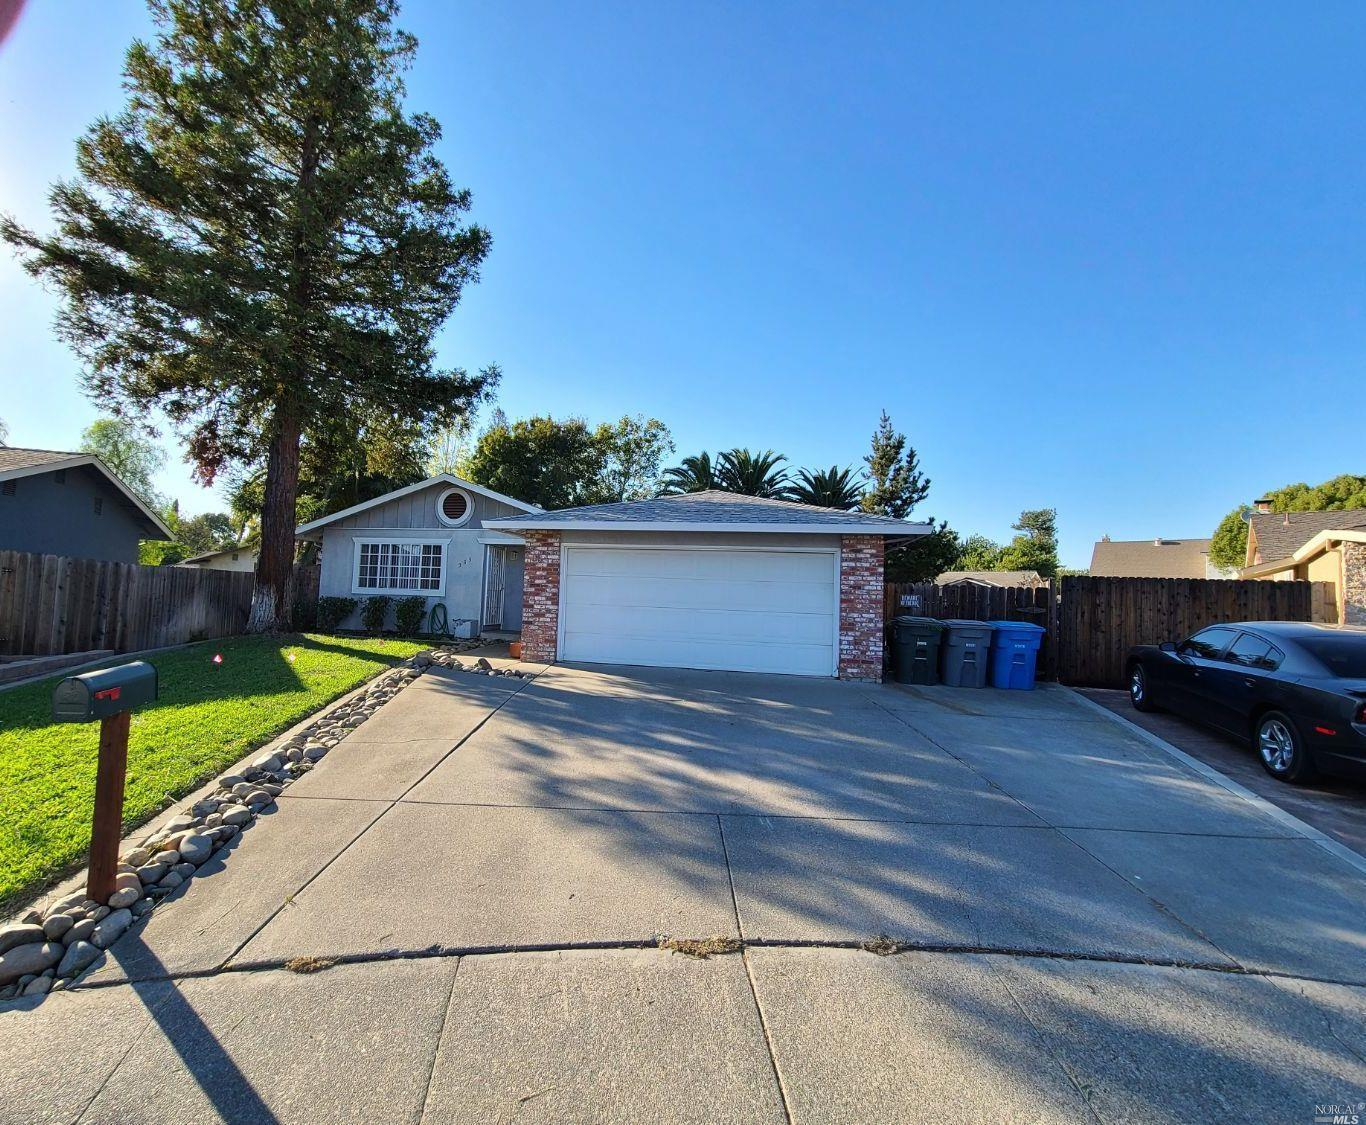 Looking for beautiful home located in a cul-de-sac, 355 Franklin Ct. is just the home you are lookin